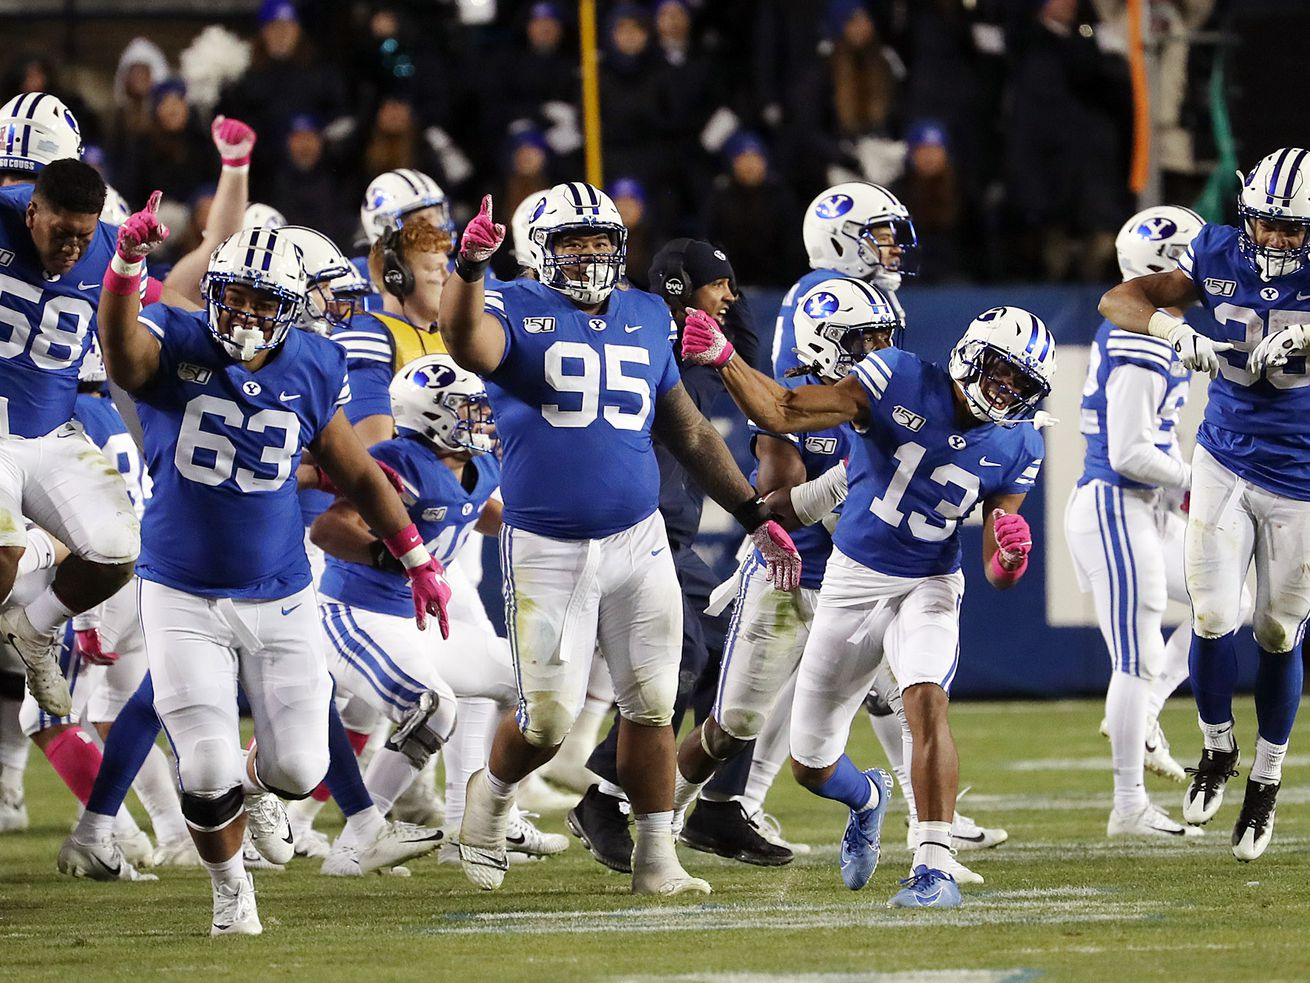 Postgame coverage: BYU Cougars 28, No. 14 Boise State Broncos 25